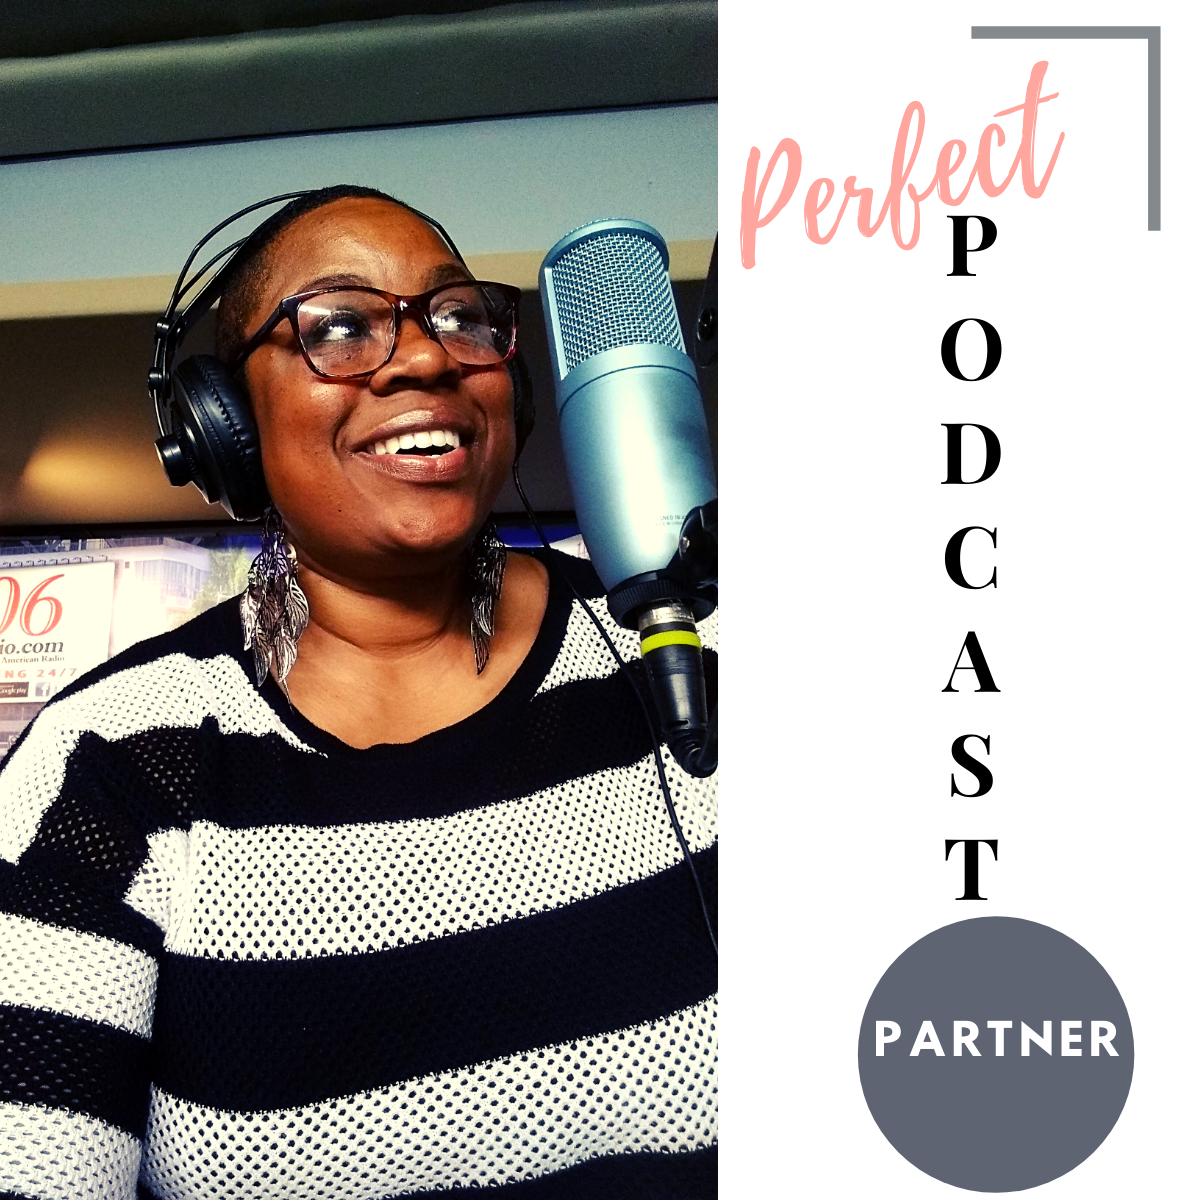 Podcast Partner [The Masterclass]